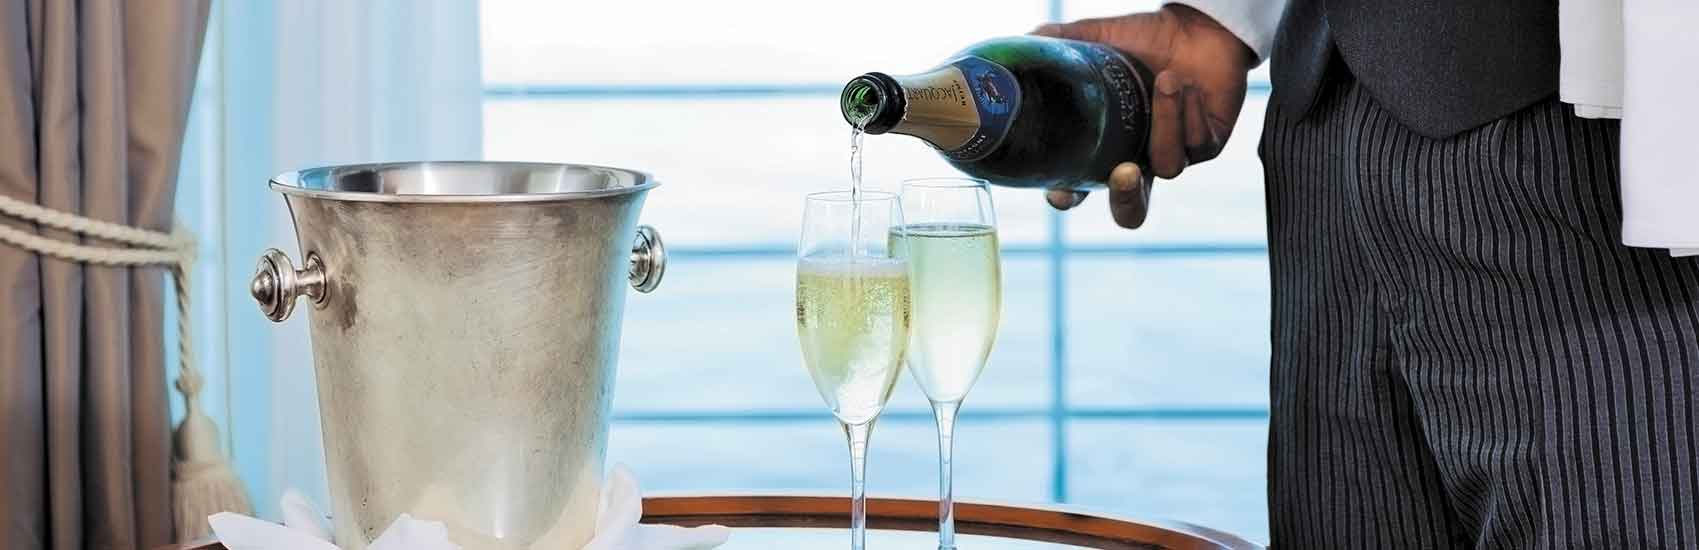 First Class In Every Way with Regent Seven Seas Cruises® 1